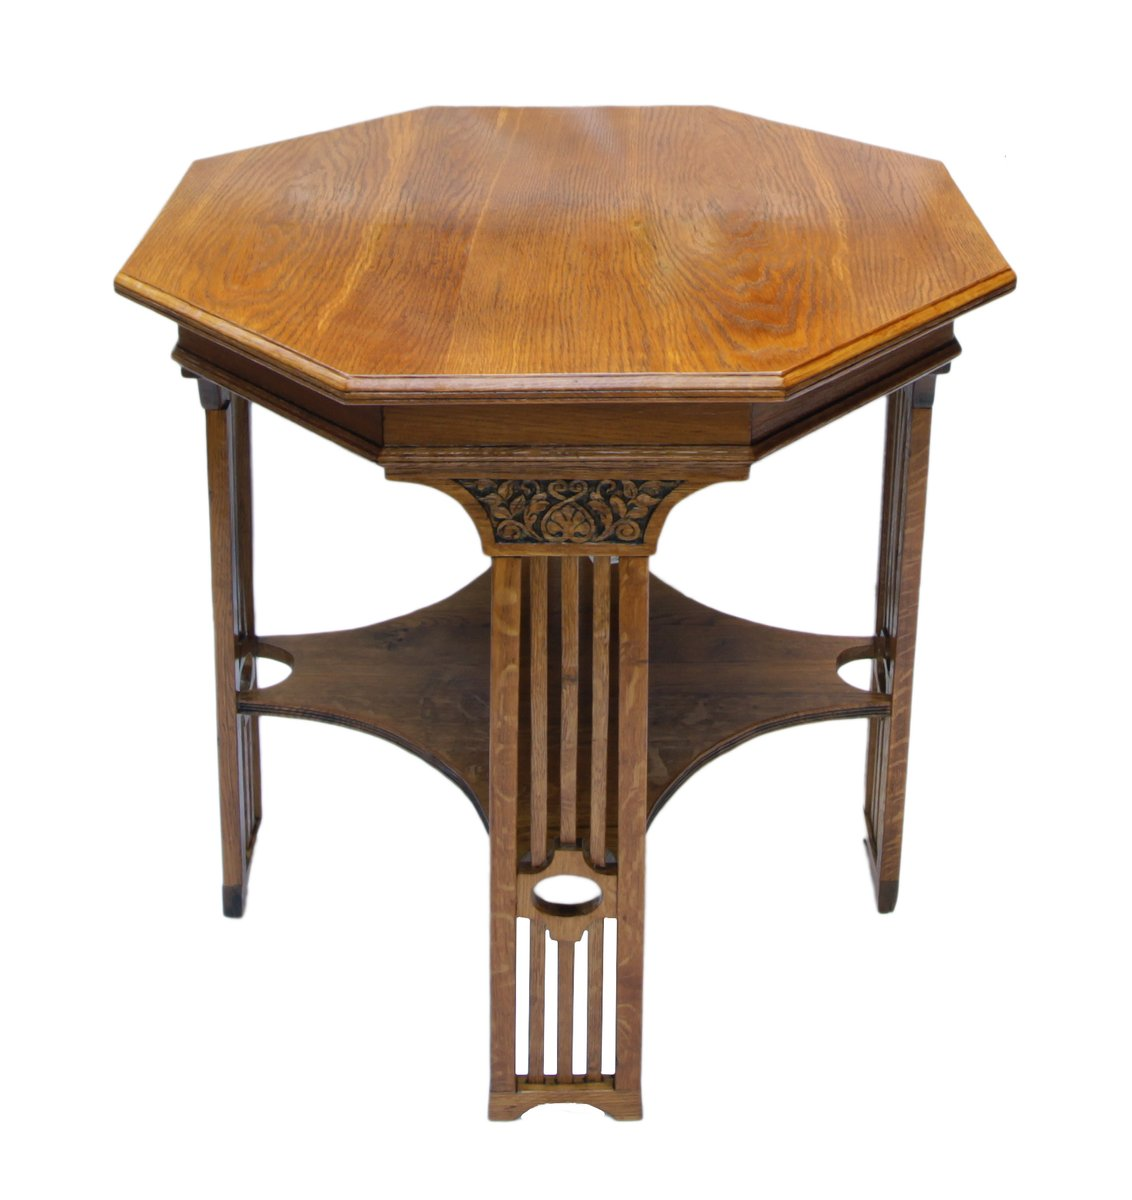 art nouveau oak occasional table for sale at pamono - art nouveau oak occasional table